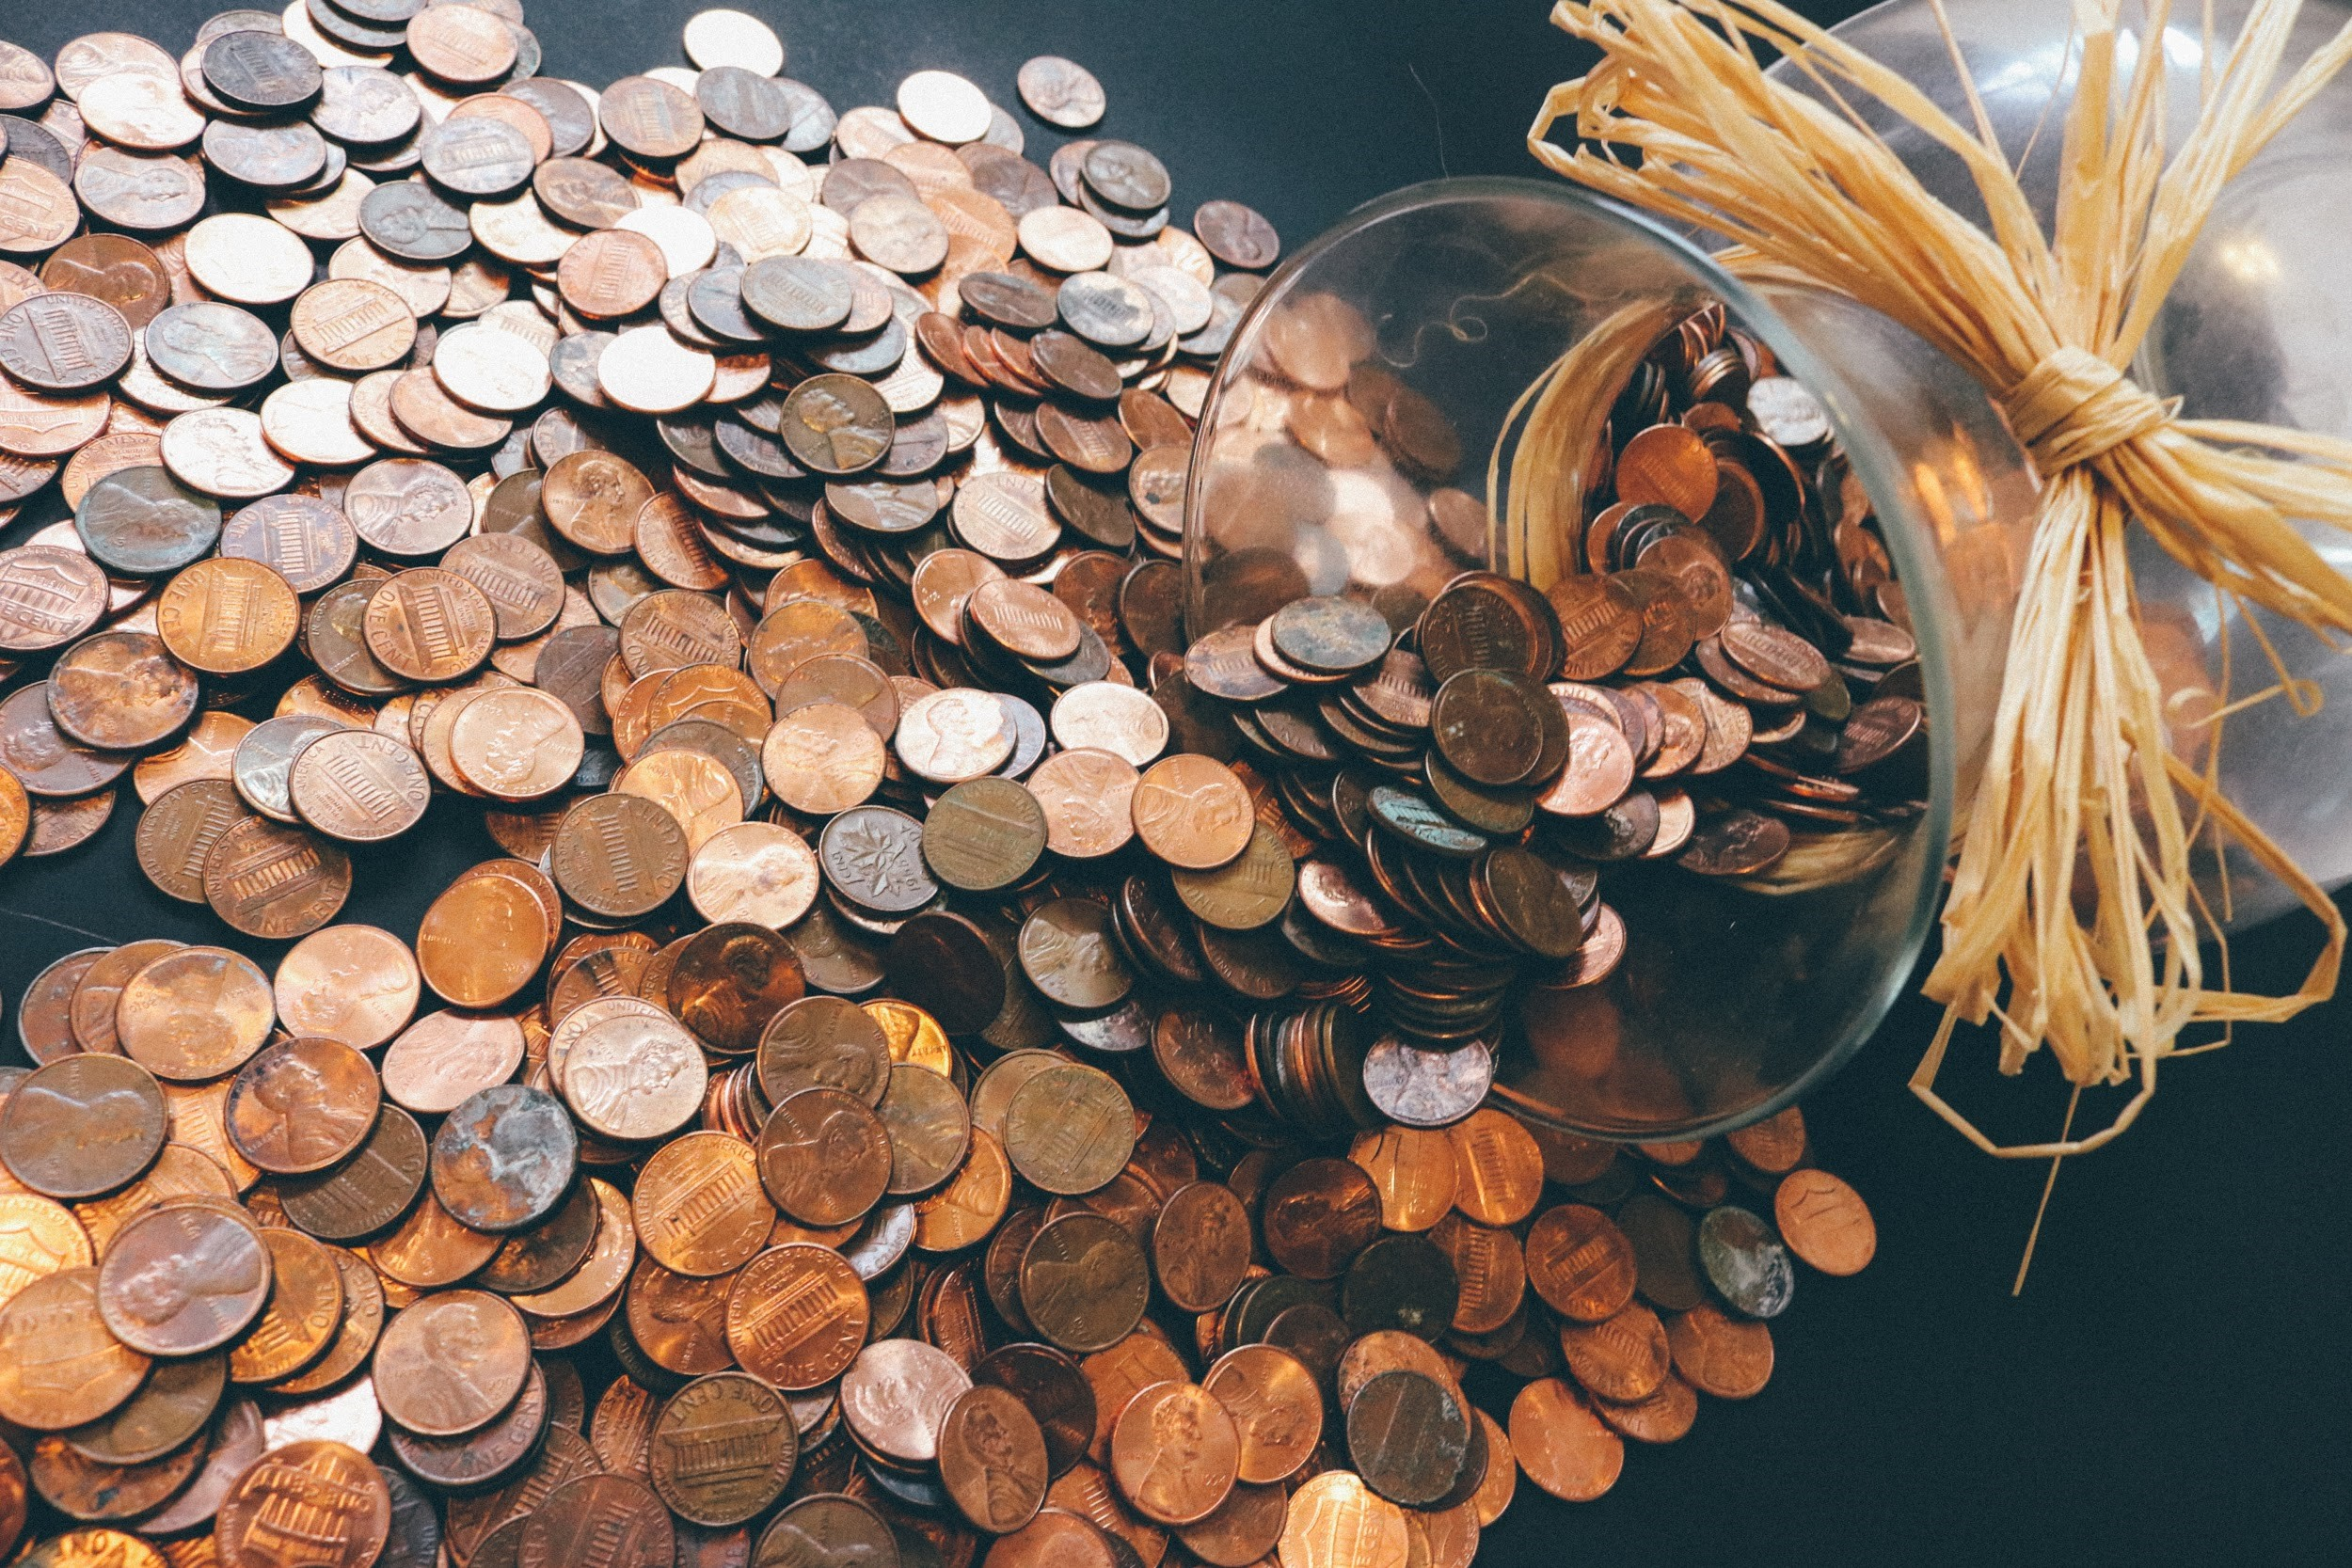 Save The Pennies Now For Your Children's Future - jar of pennies image